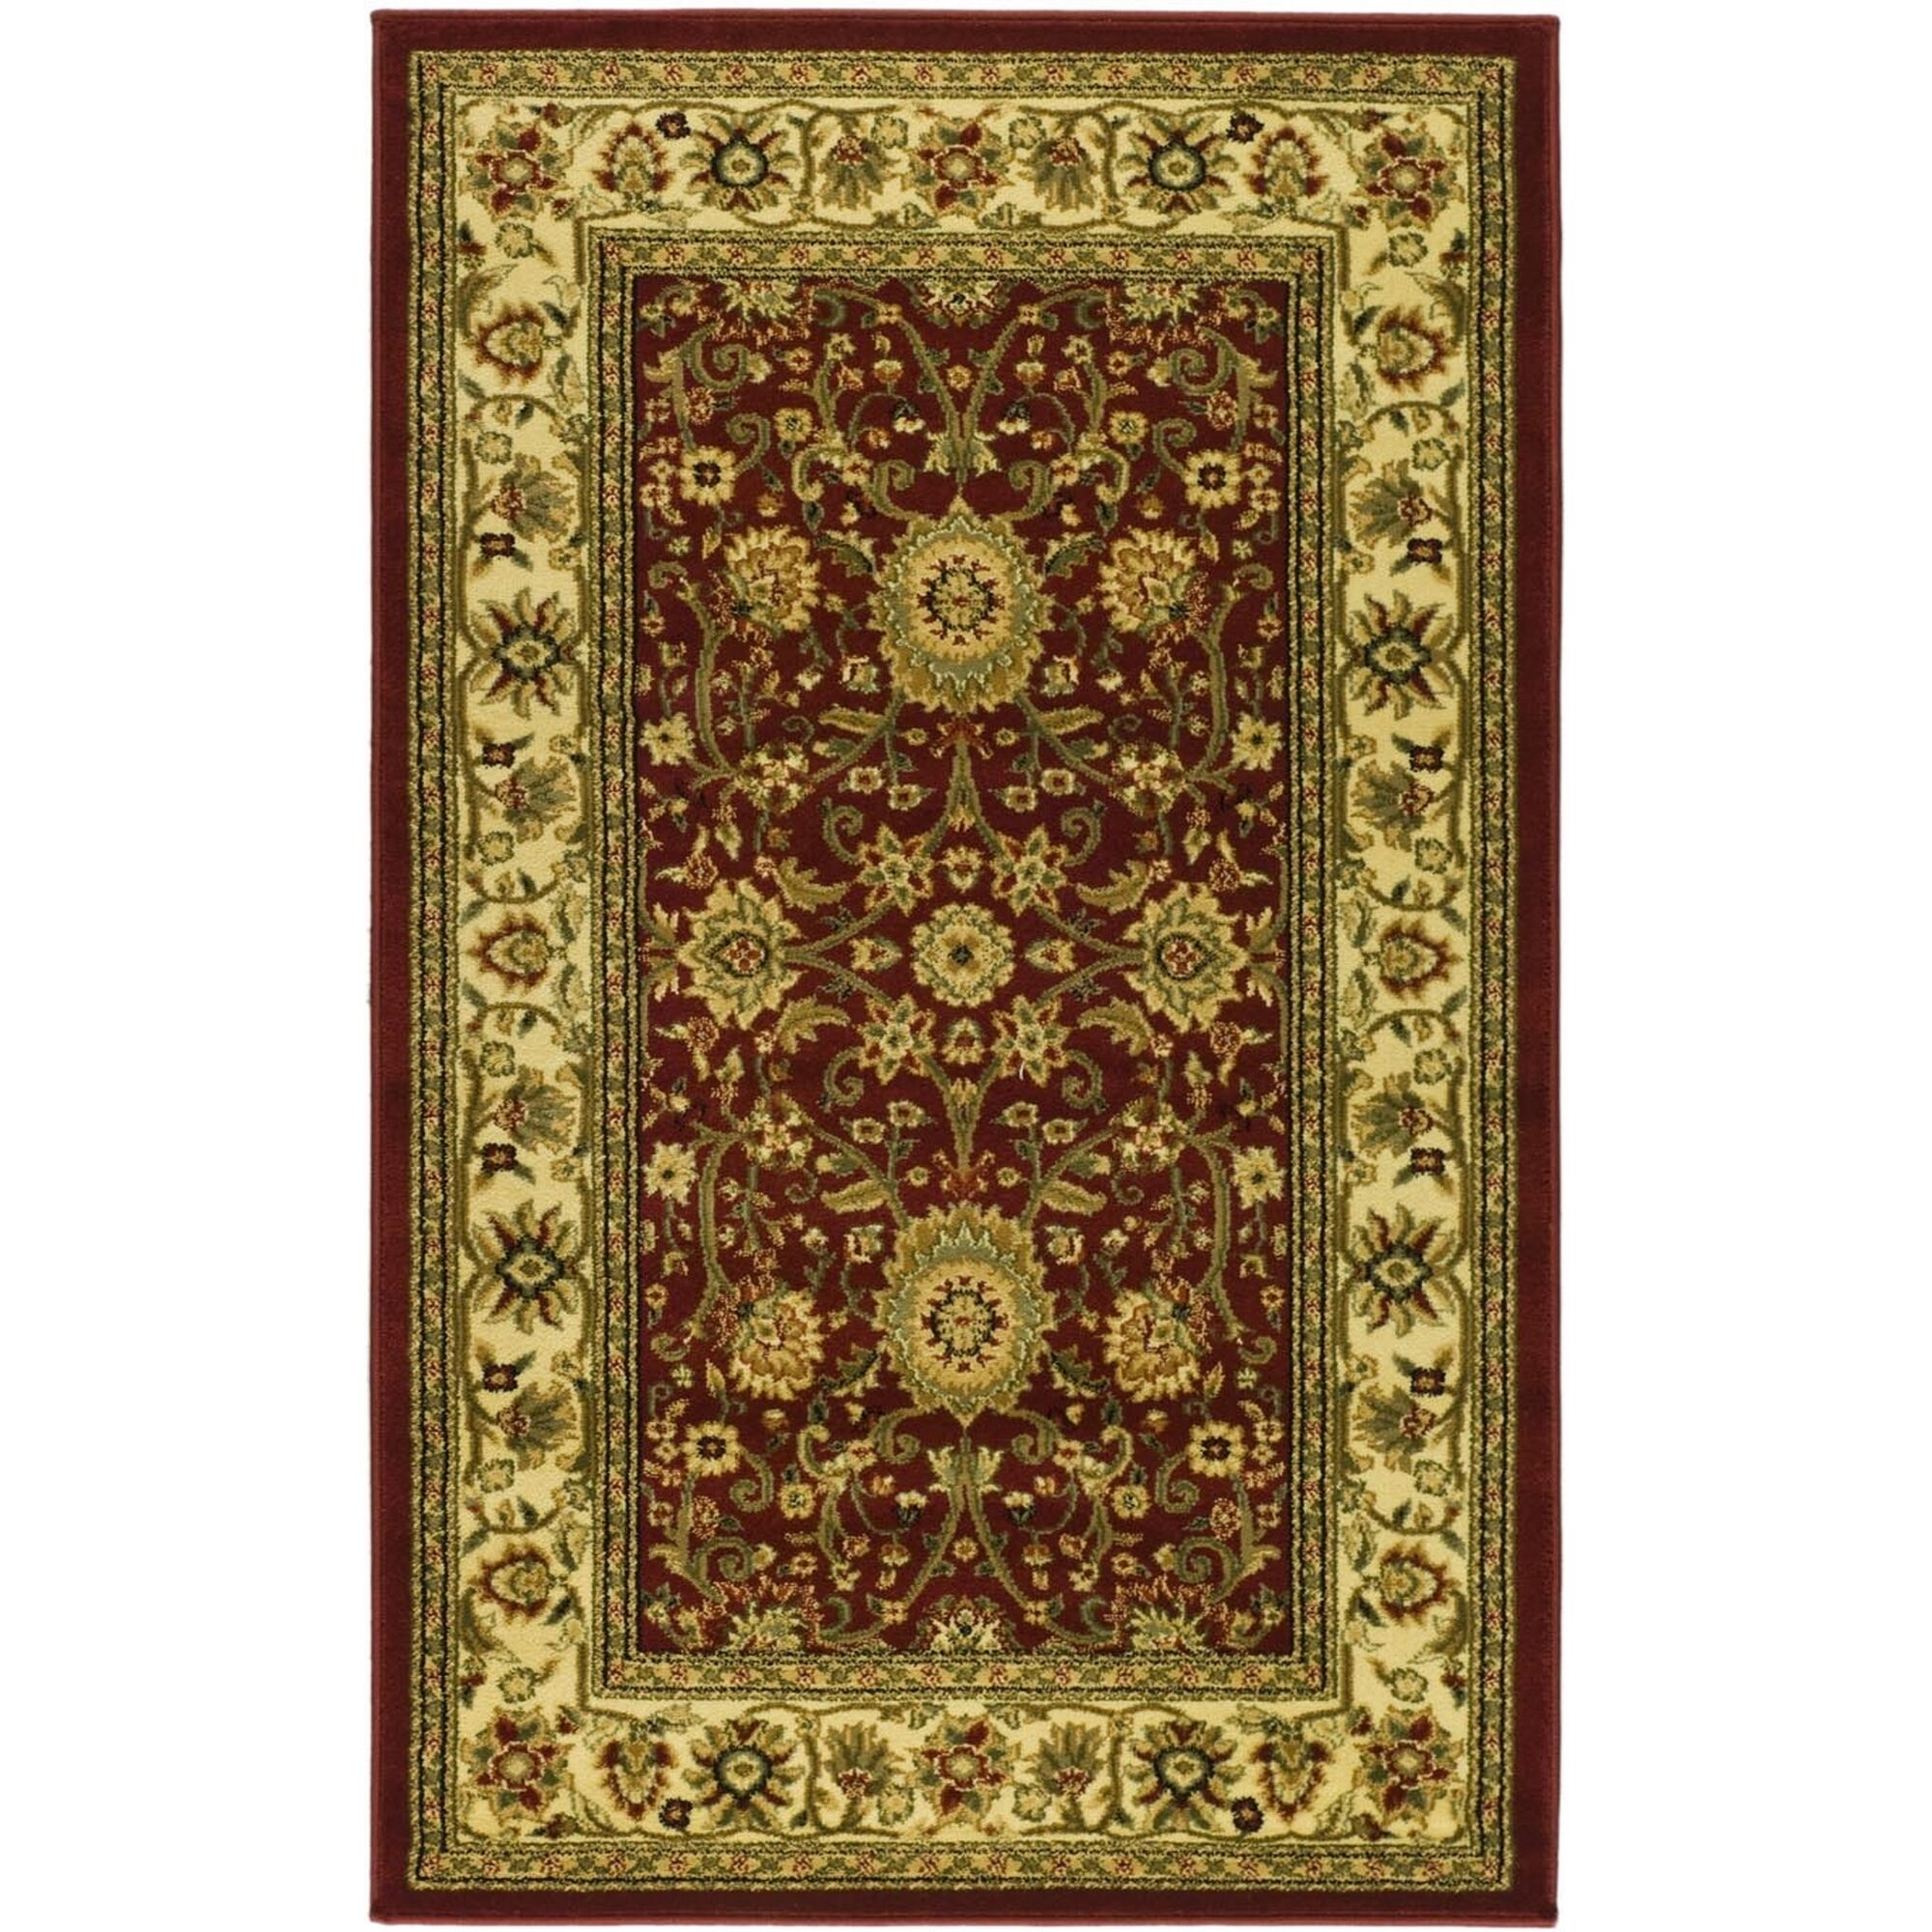 Ottis Red/Ivory Persian Area Rug Rug Size: Rectangle 4' x 6'